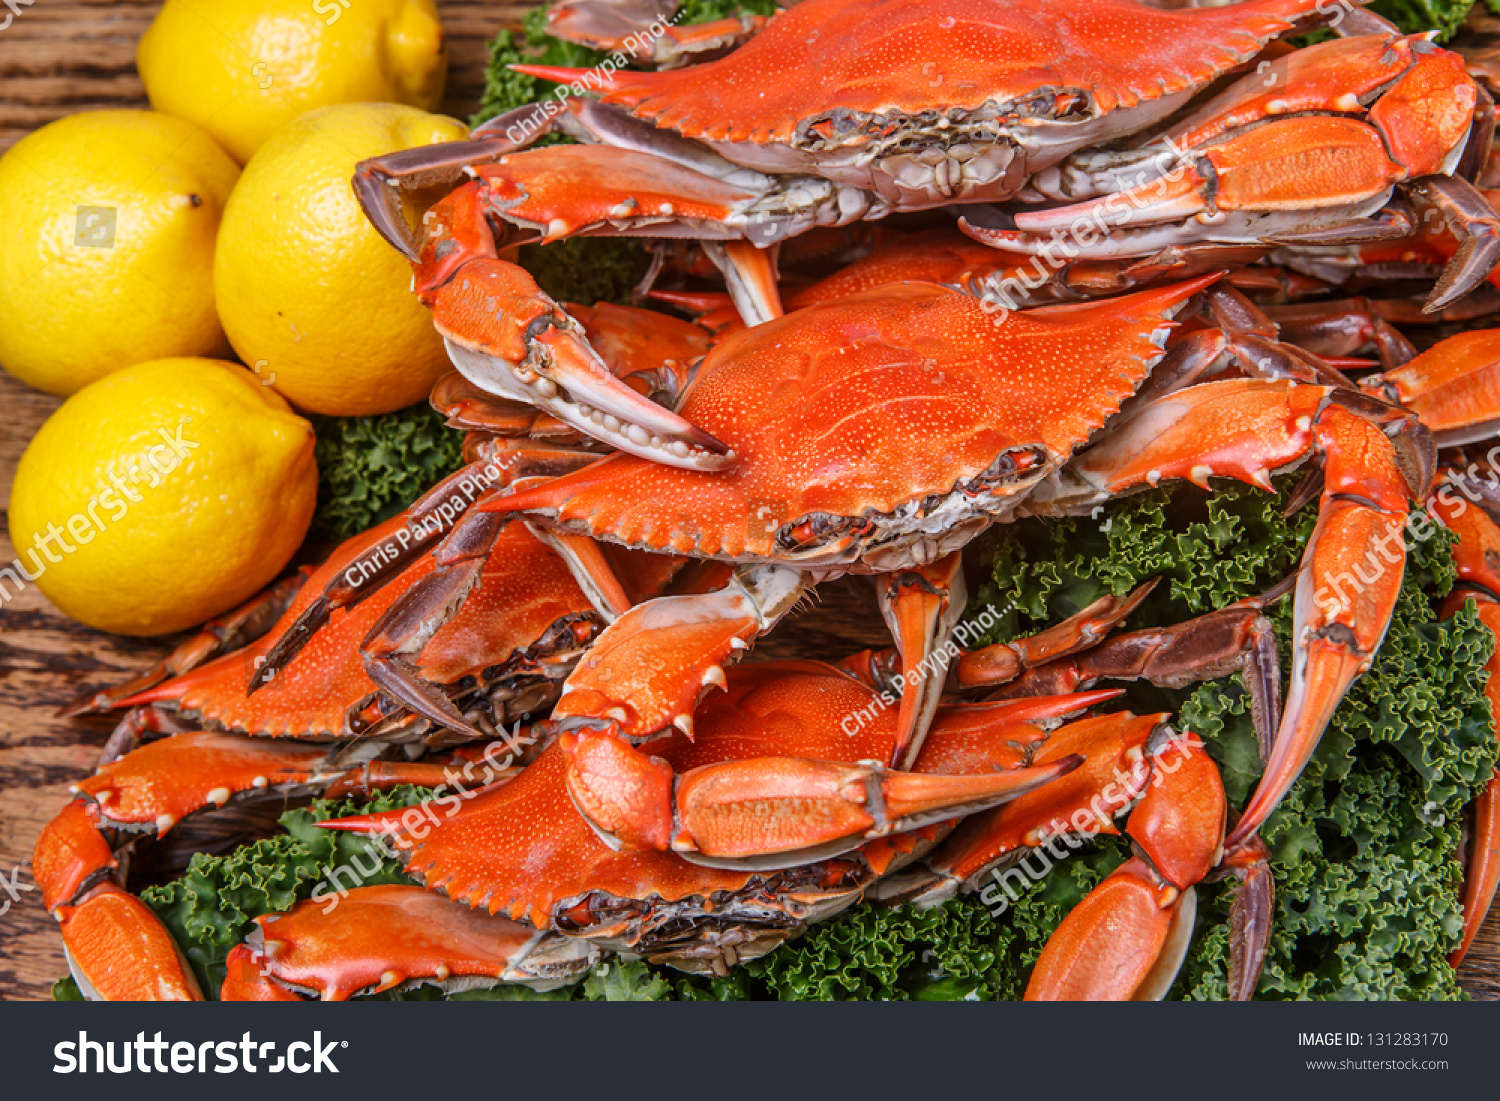 Steamed Blue Crabs One Of The Symbols Of Maryland State And Ocean